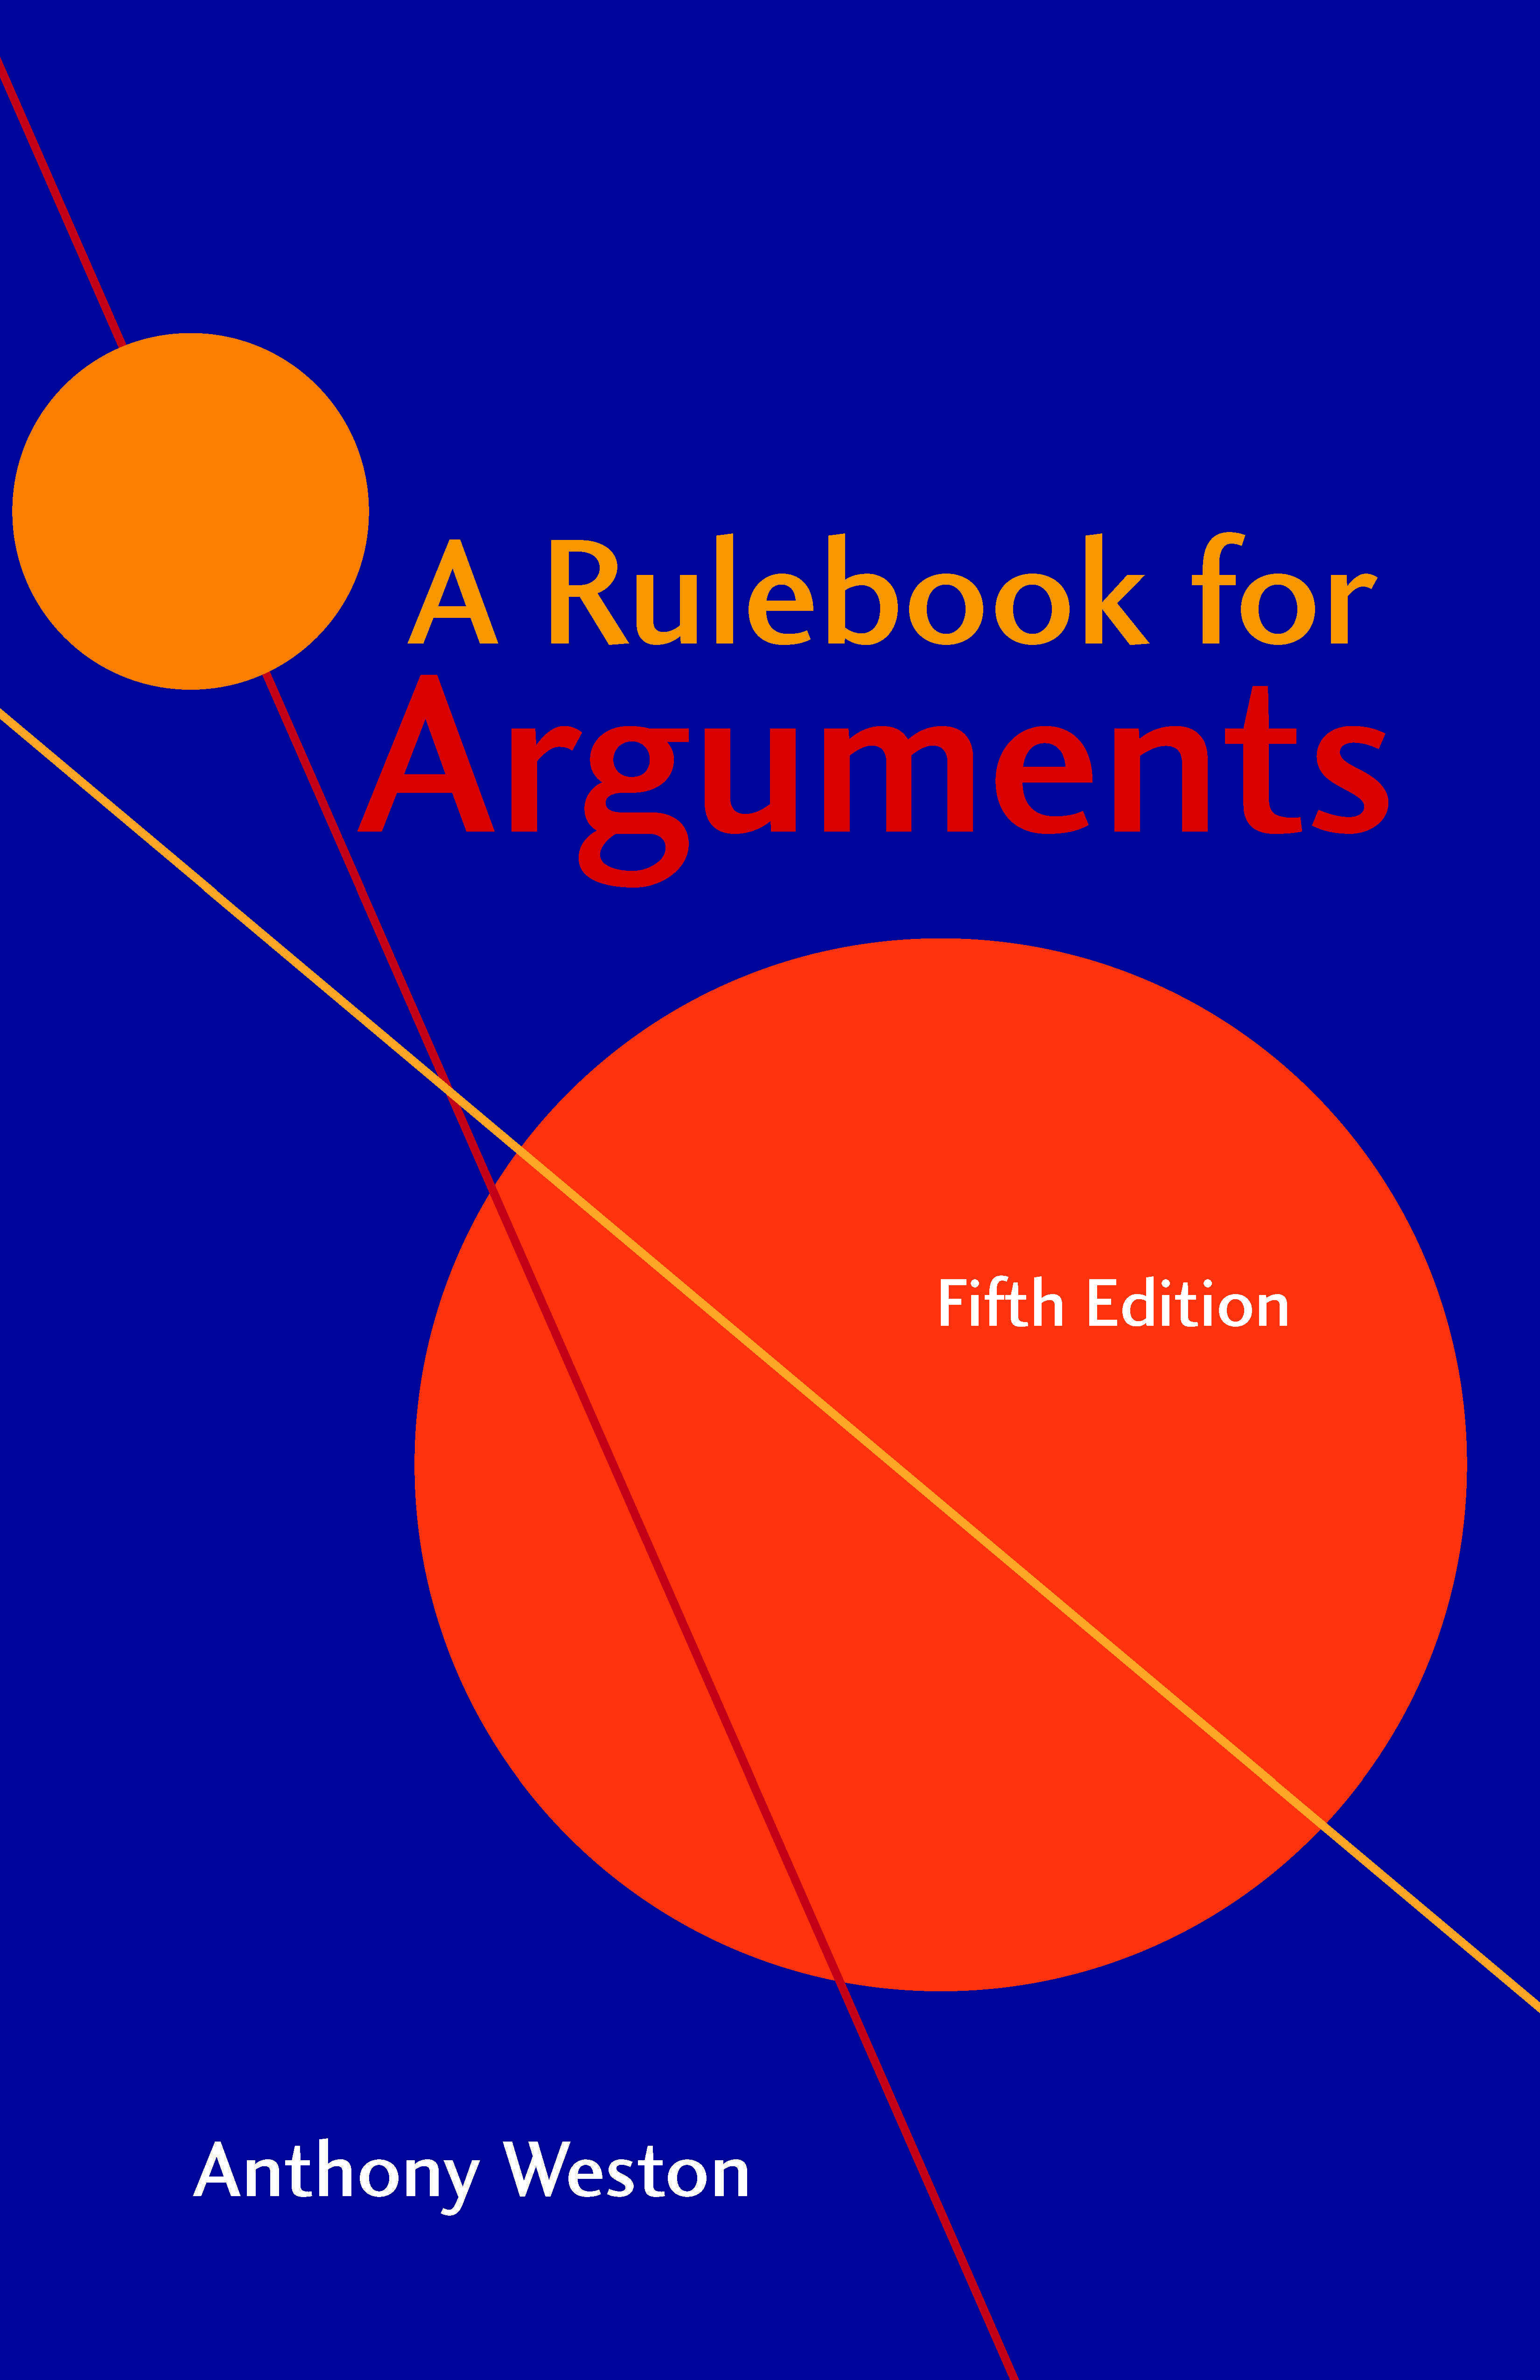 Rulebook for Arguments, 5th Edition